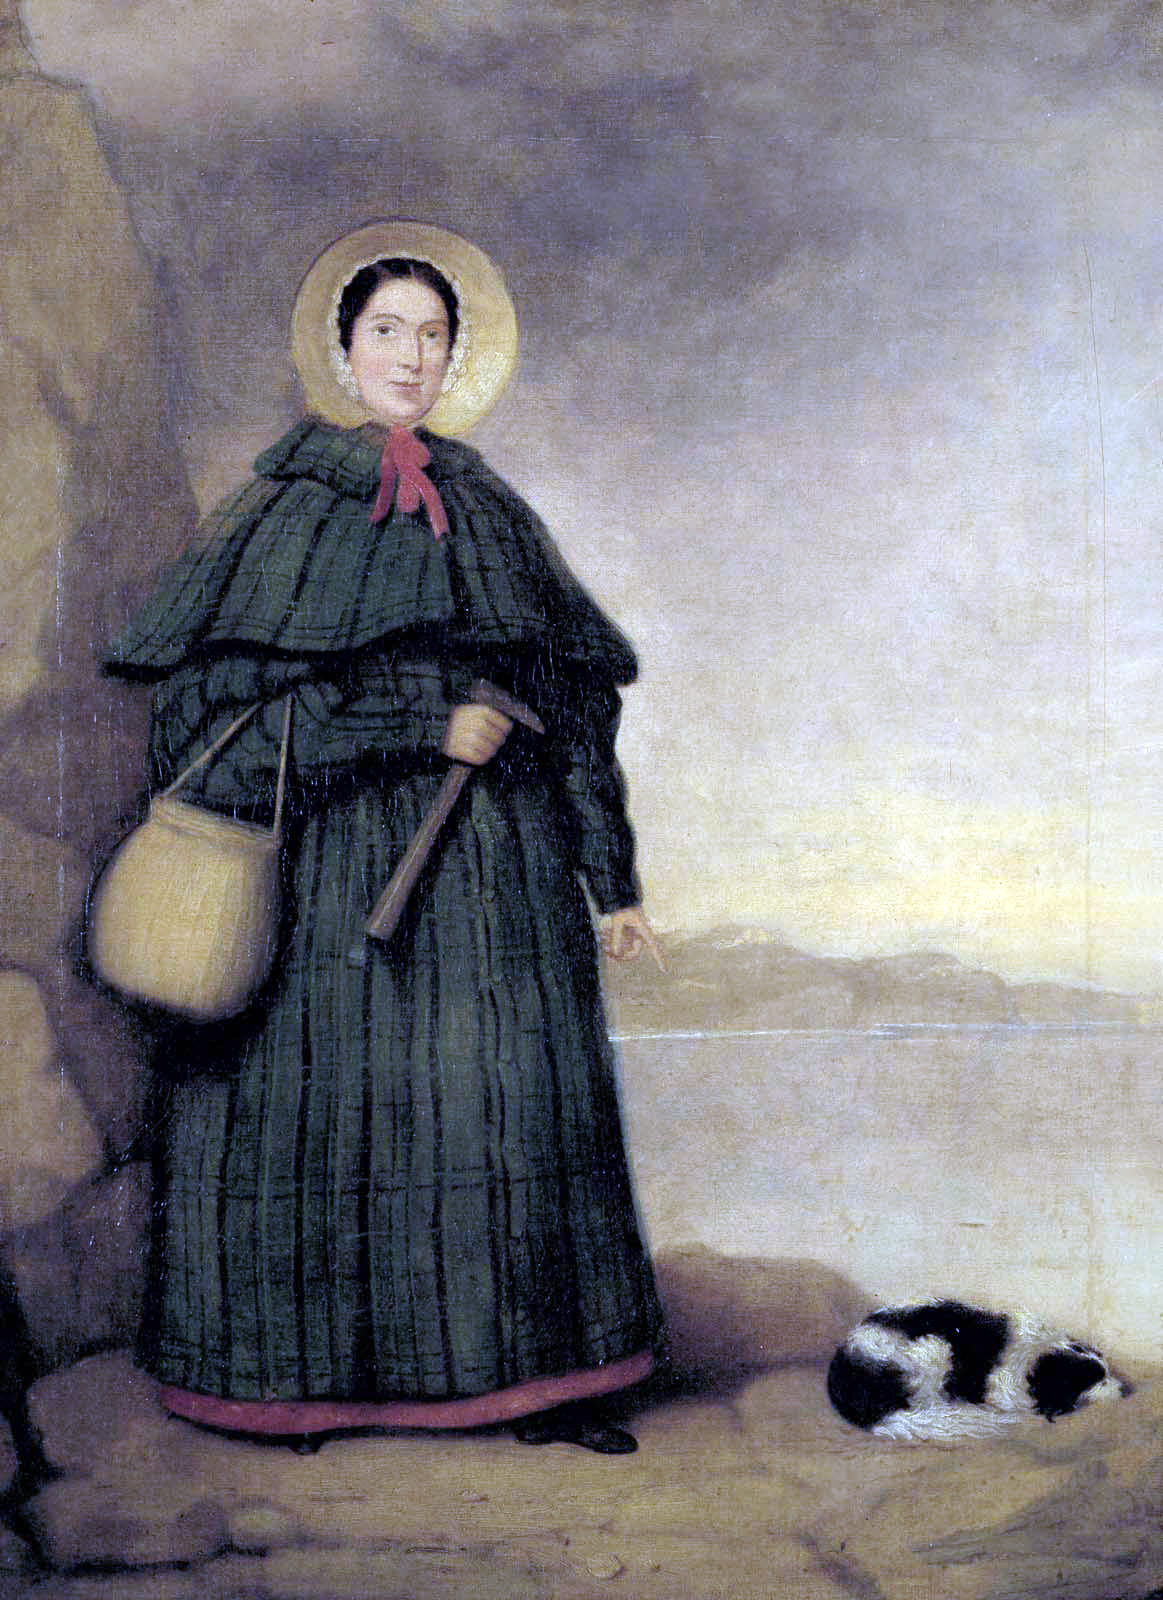 Painting of Mary Anning (pre-1842)